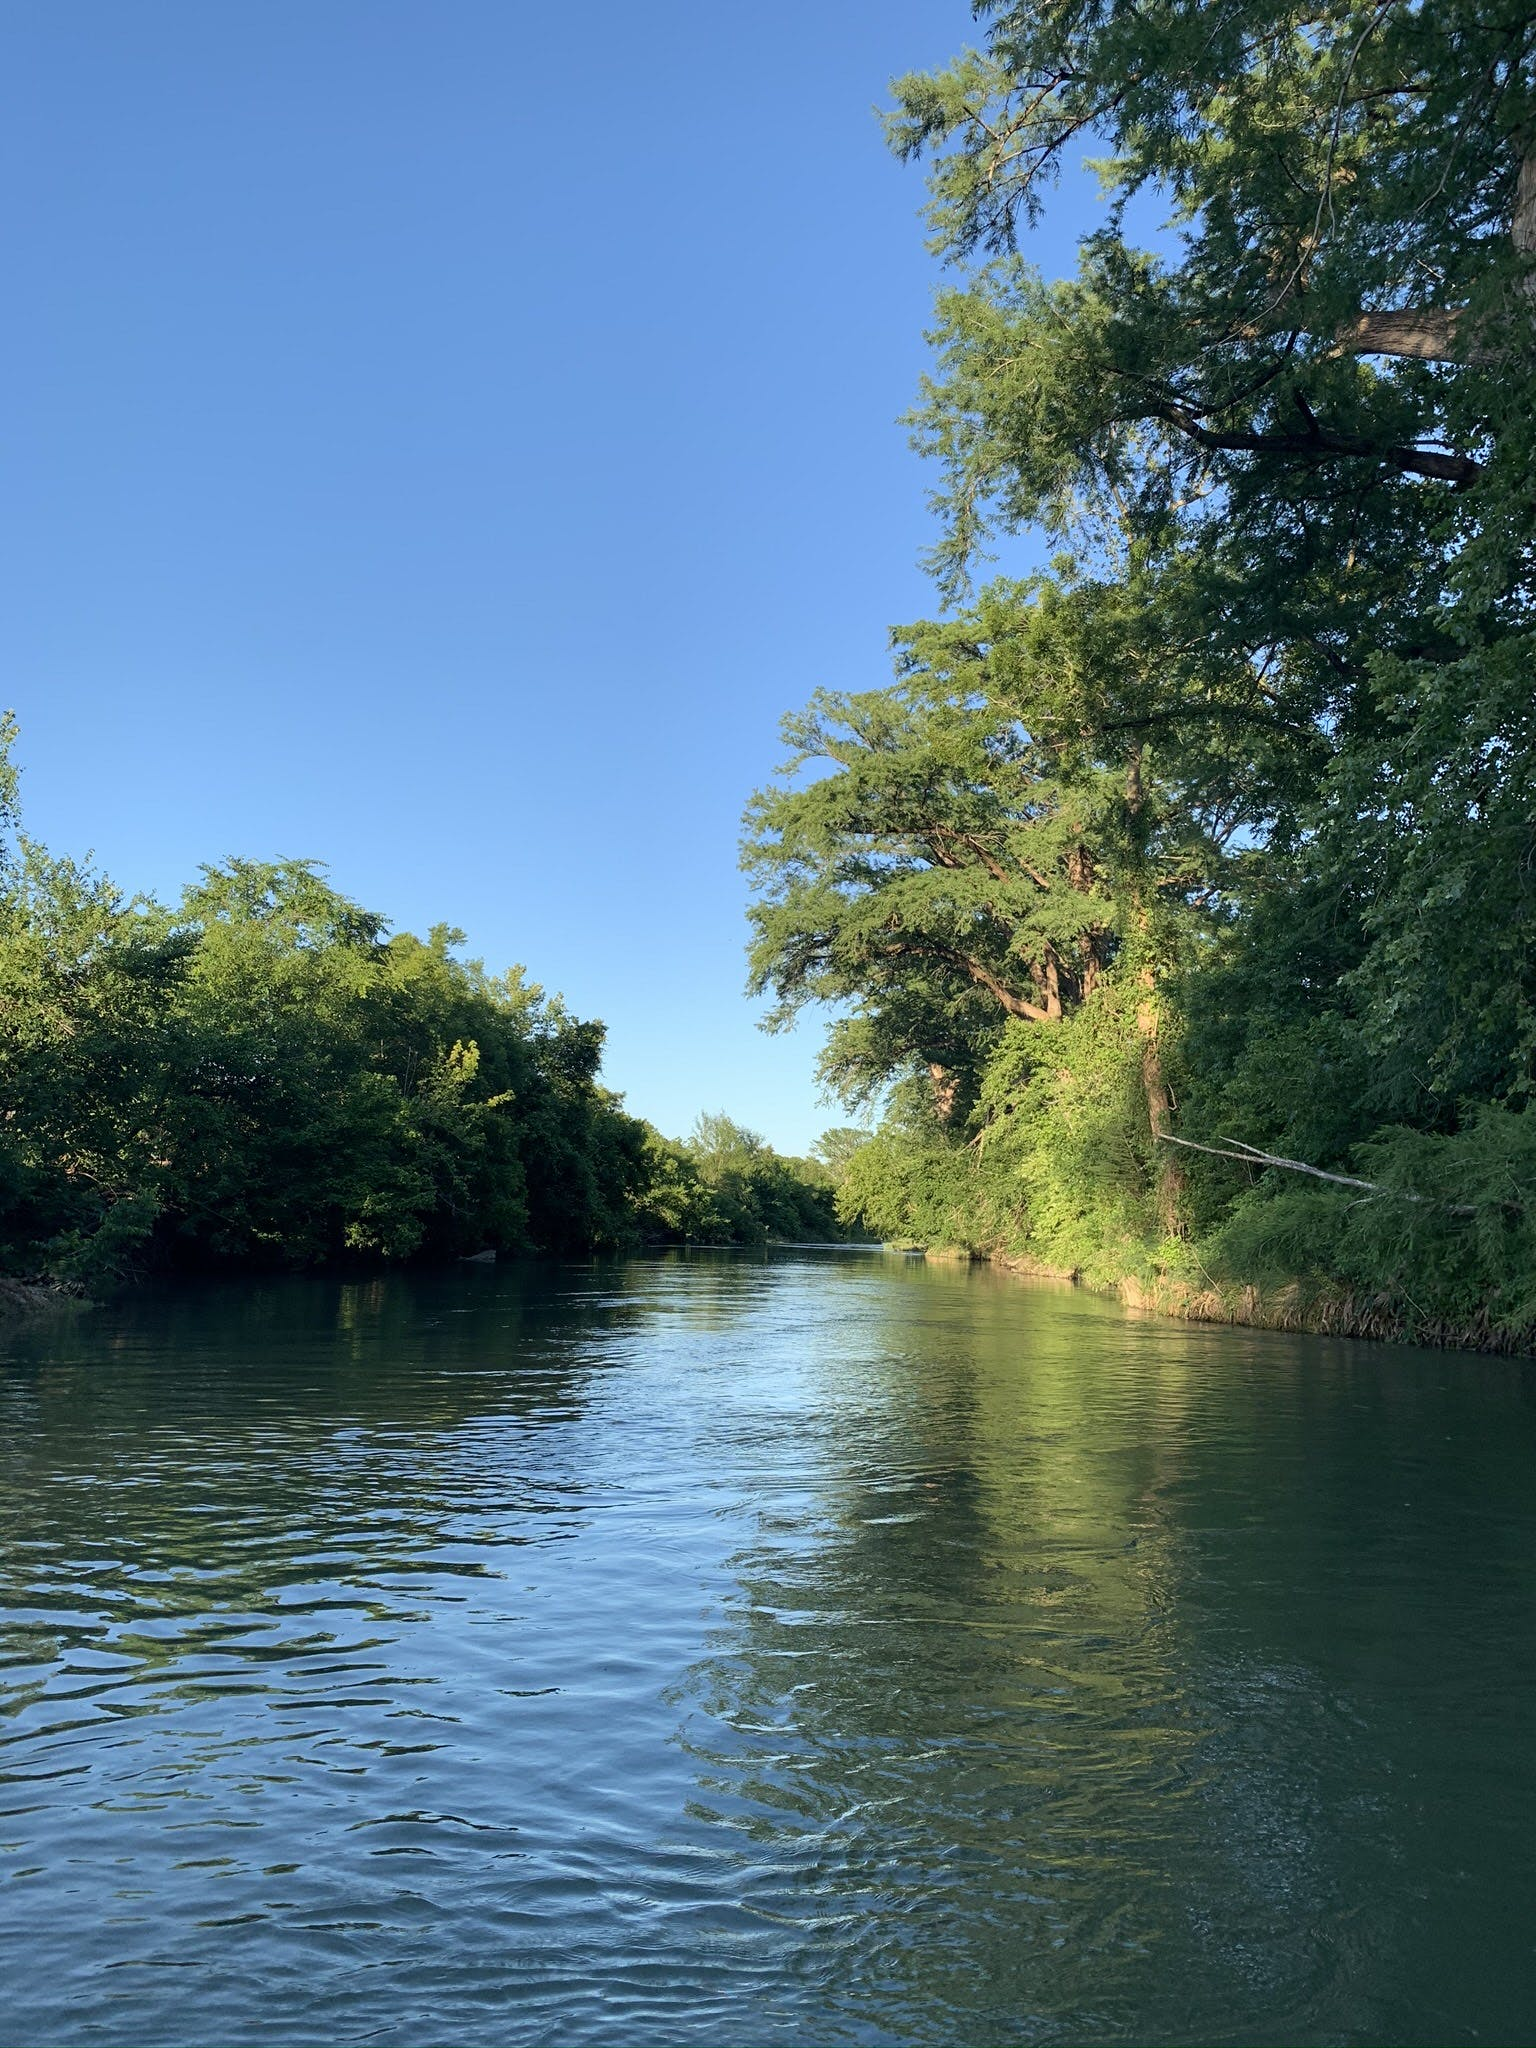 a body of water with trees in the background